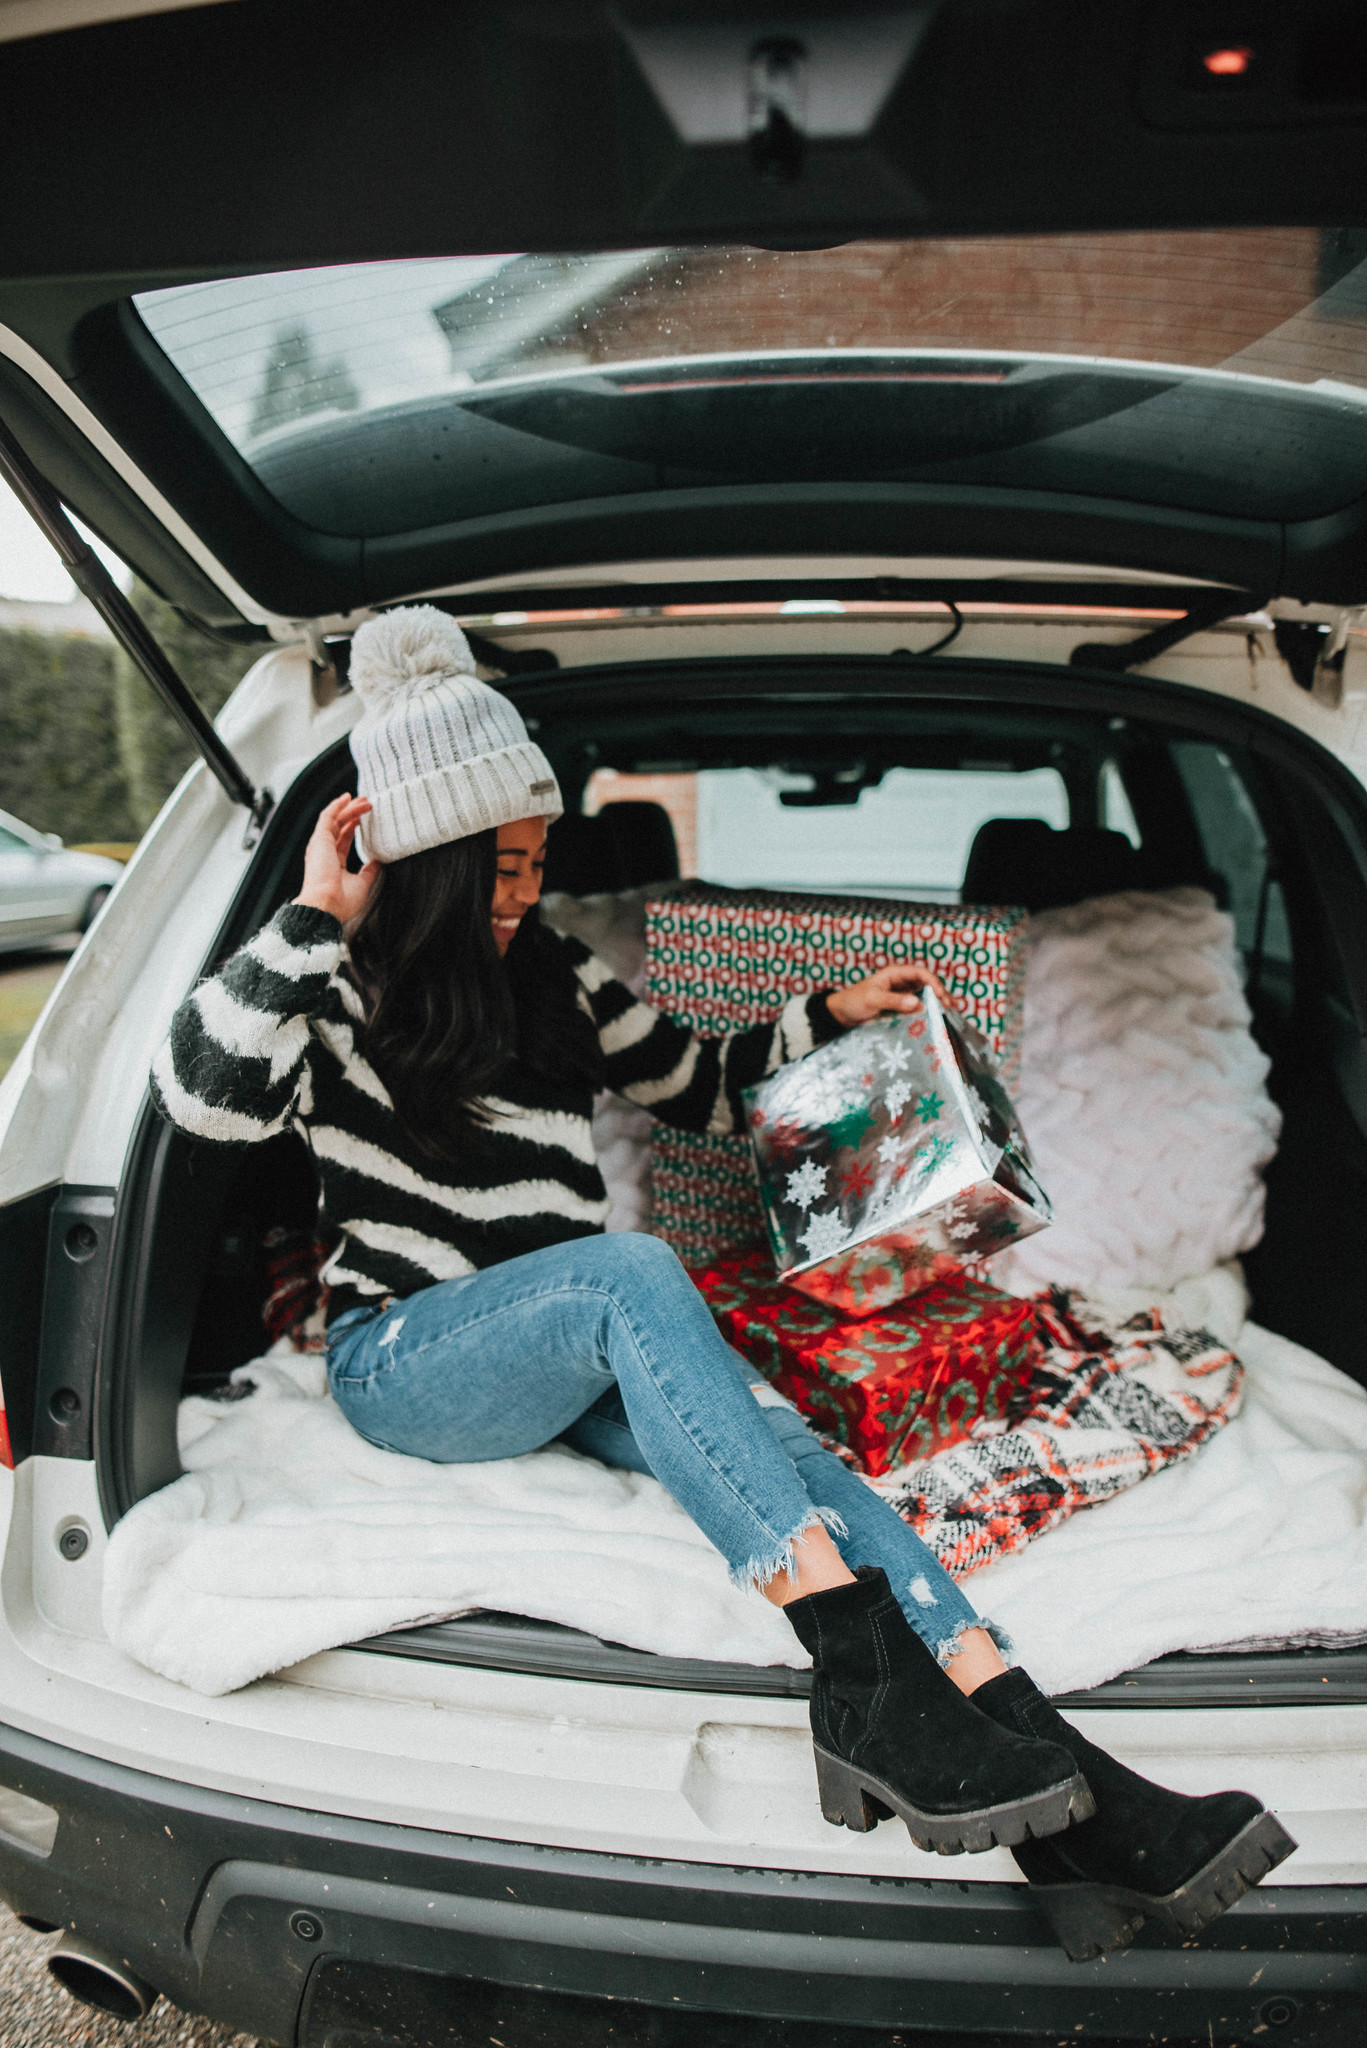 Sitting in the back of the SUV with christmas presents - winter outfits - holiday photo shoot ideas - Emma's Edition - image from www.emmasedition.com